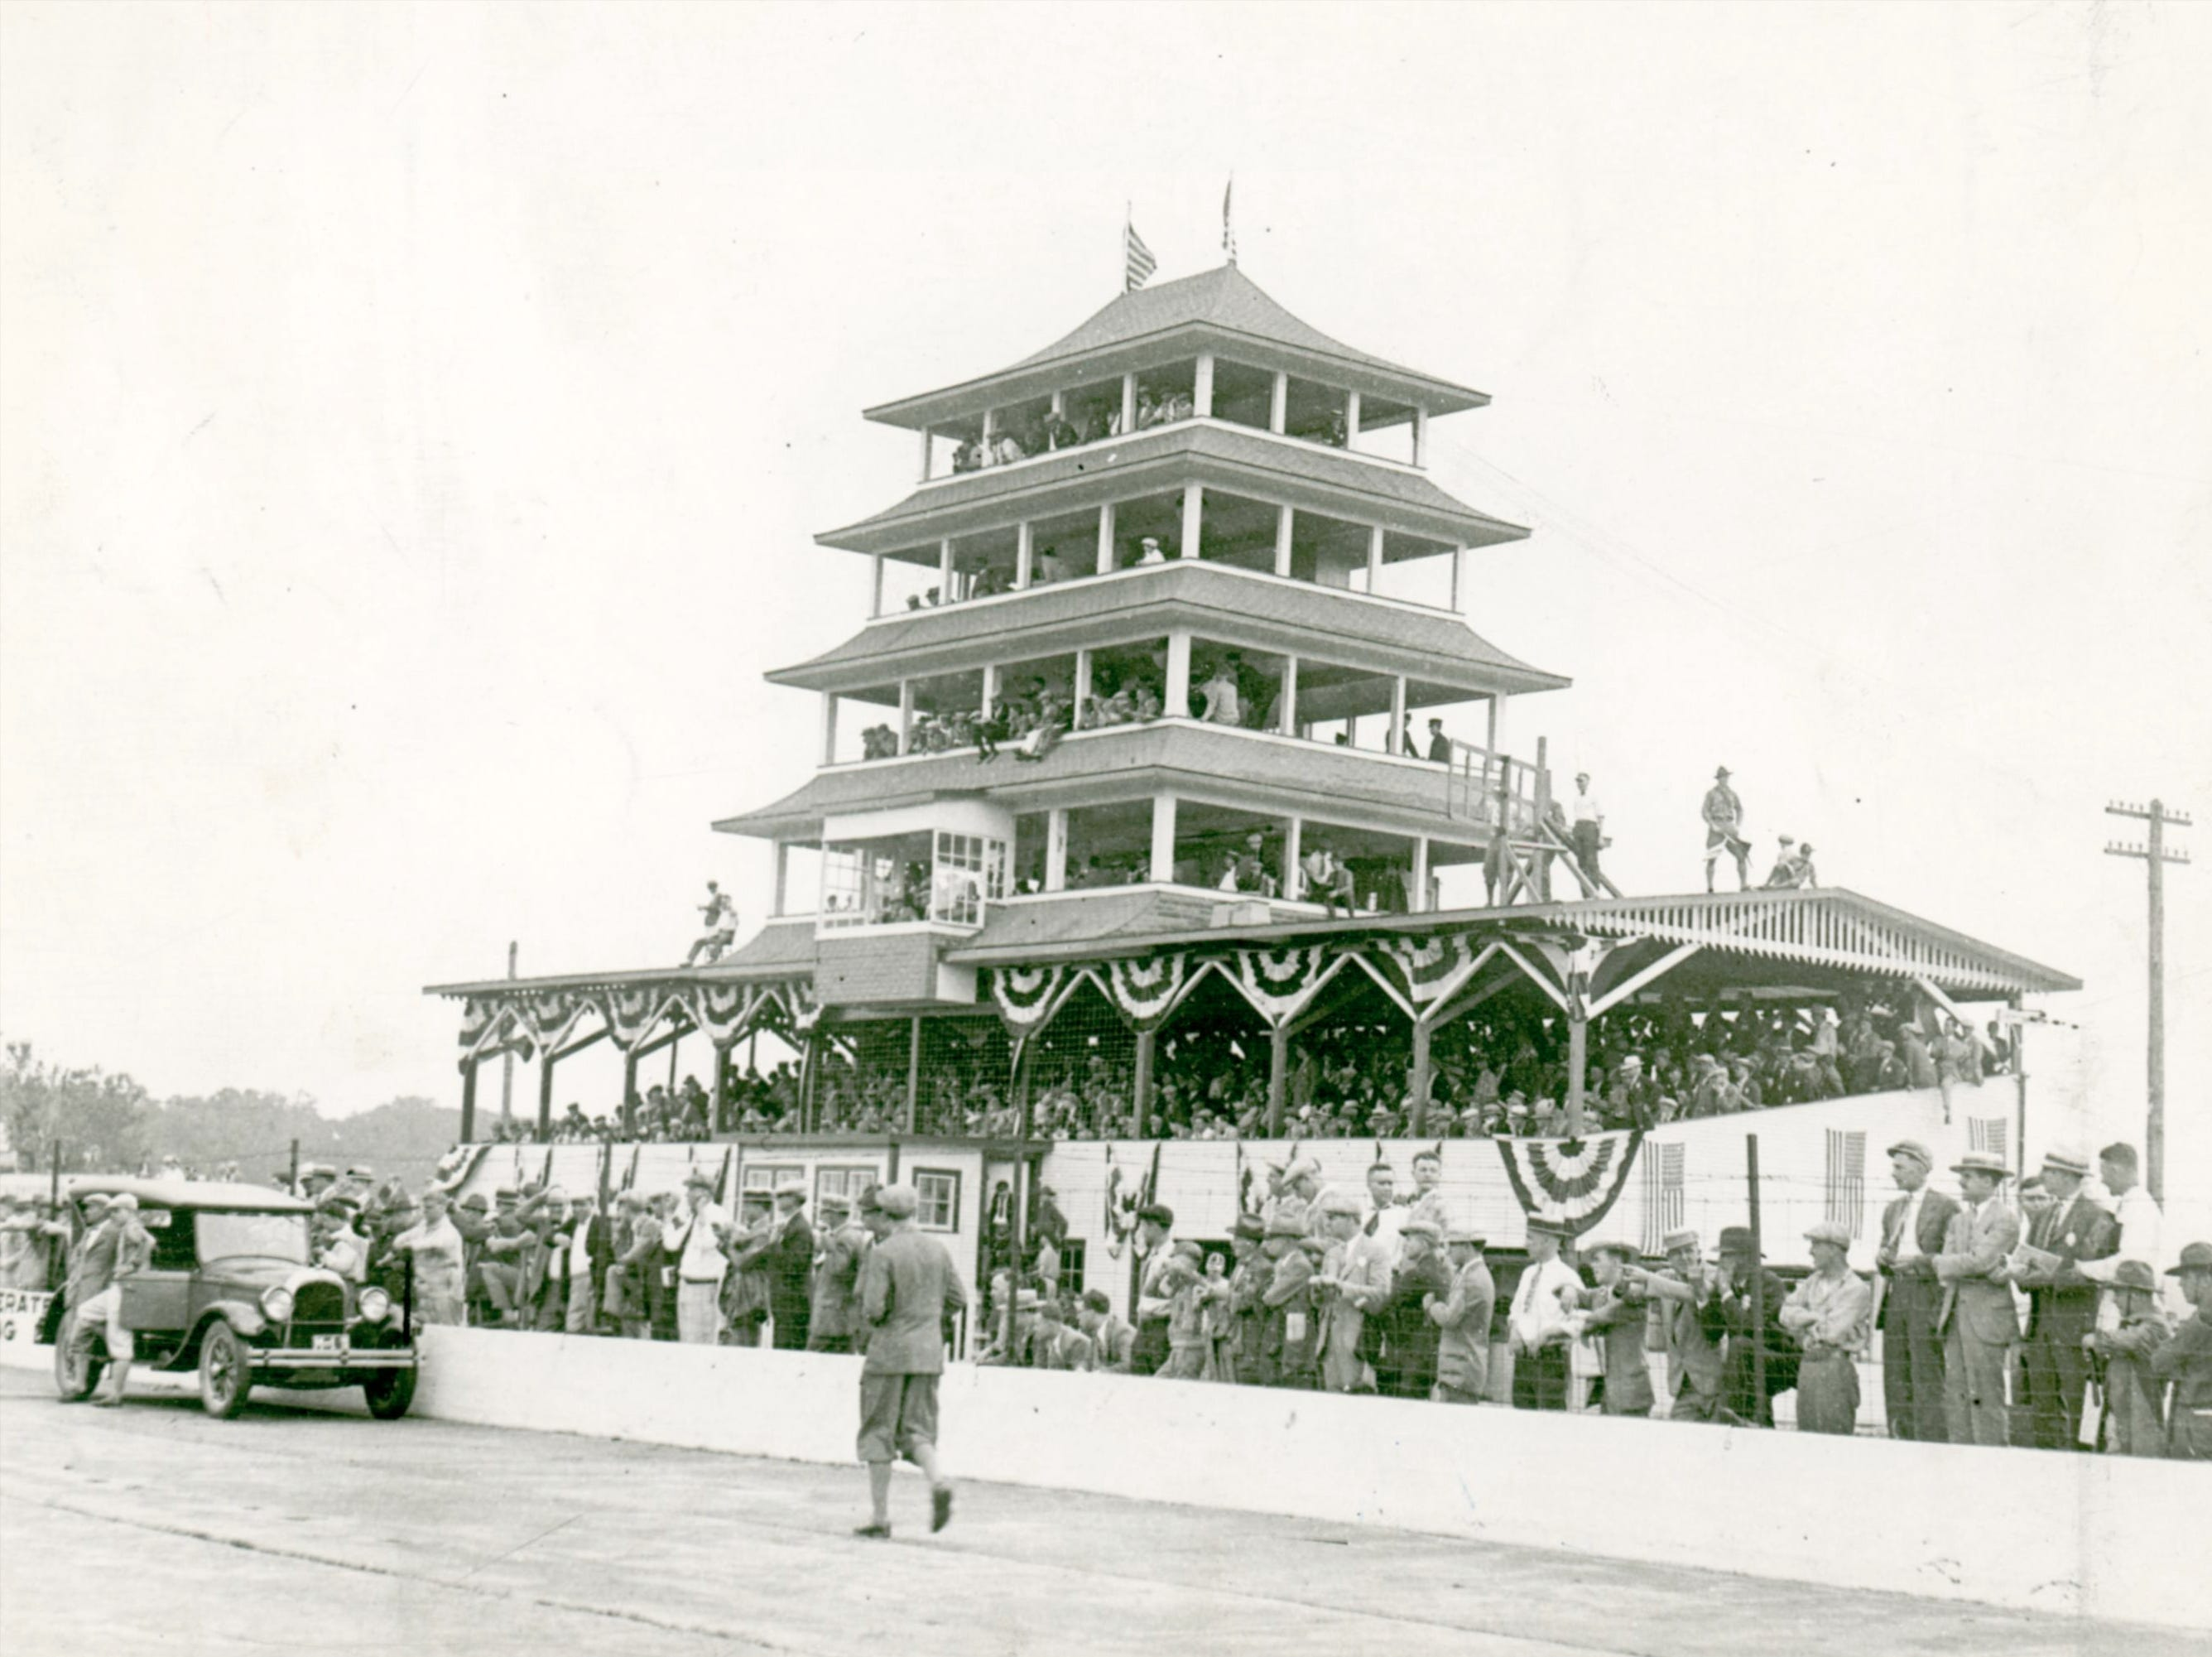 Indianapolis Motor Speedway pagoda 1929.